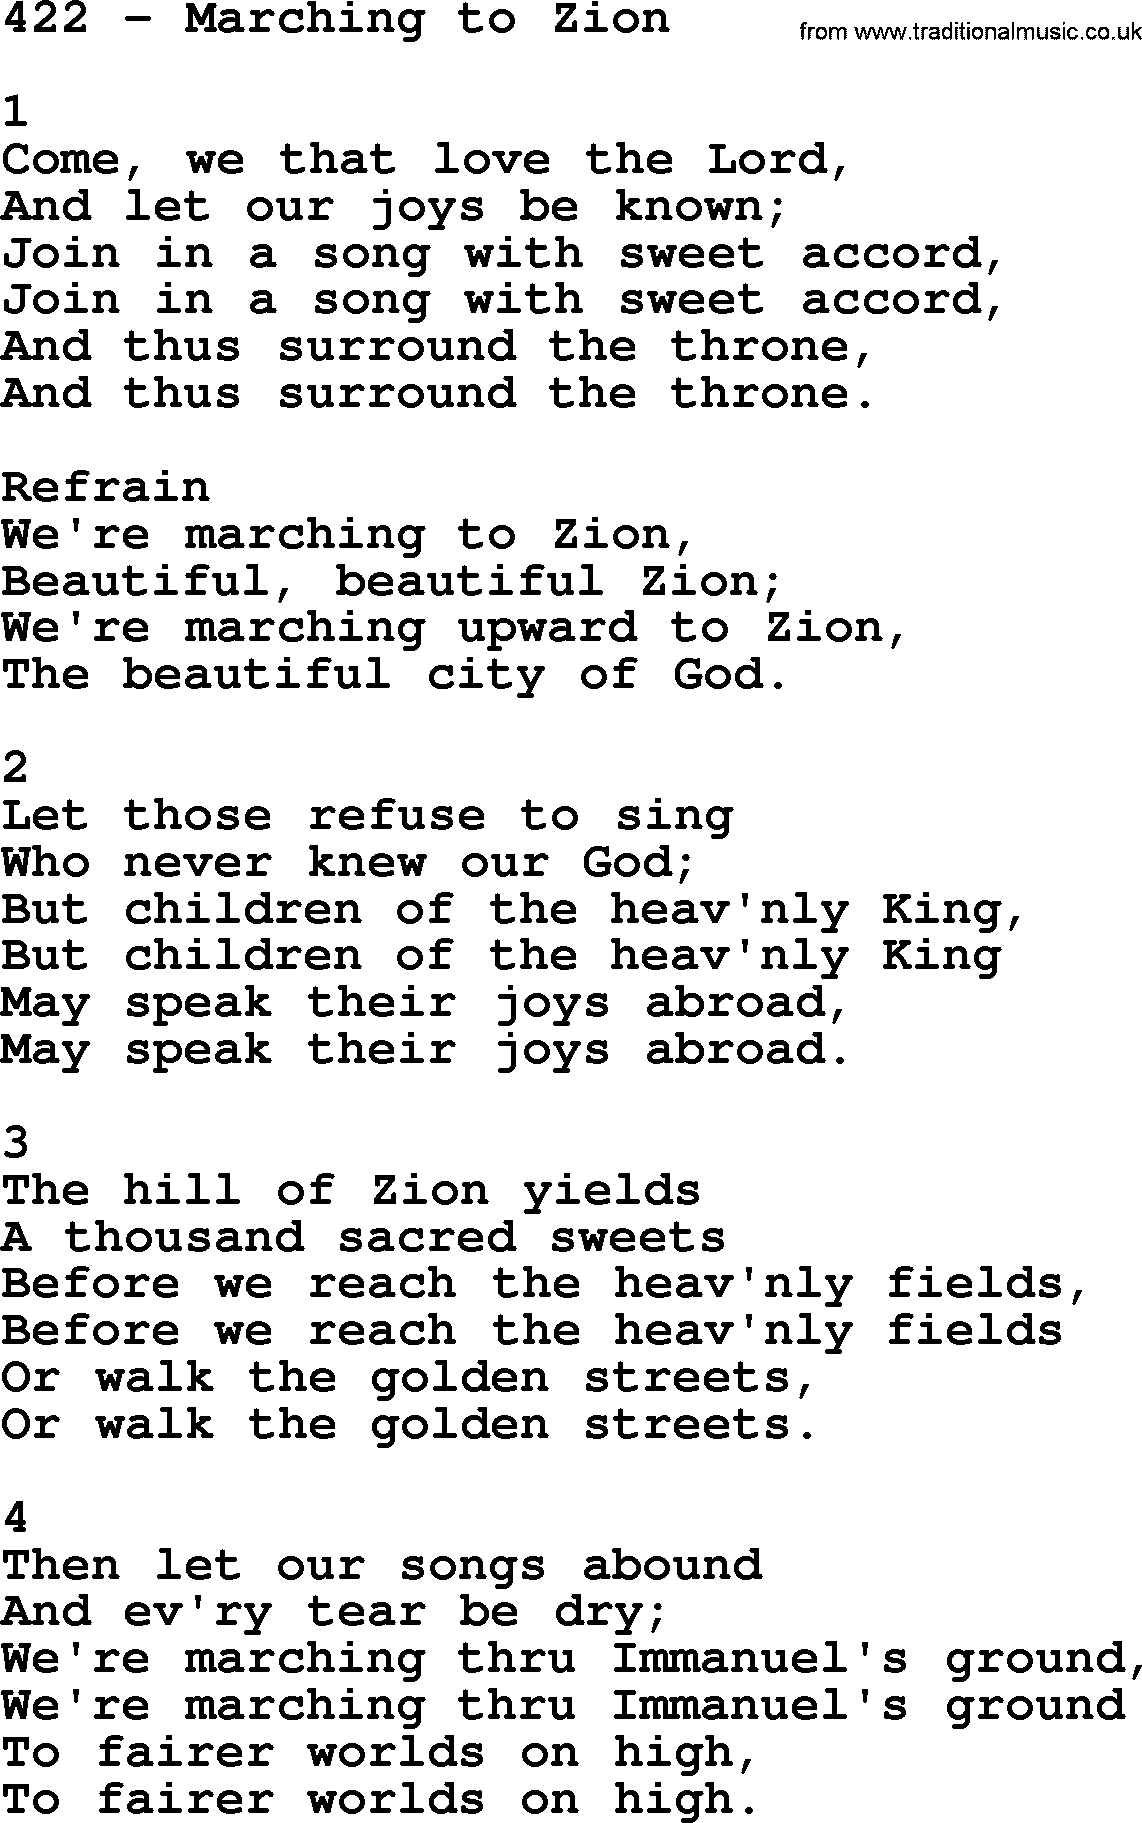 Adventist Hymnal, Song: 422-Marching To Zion, with Lyrics